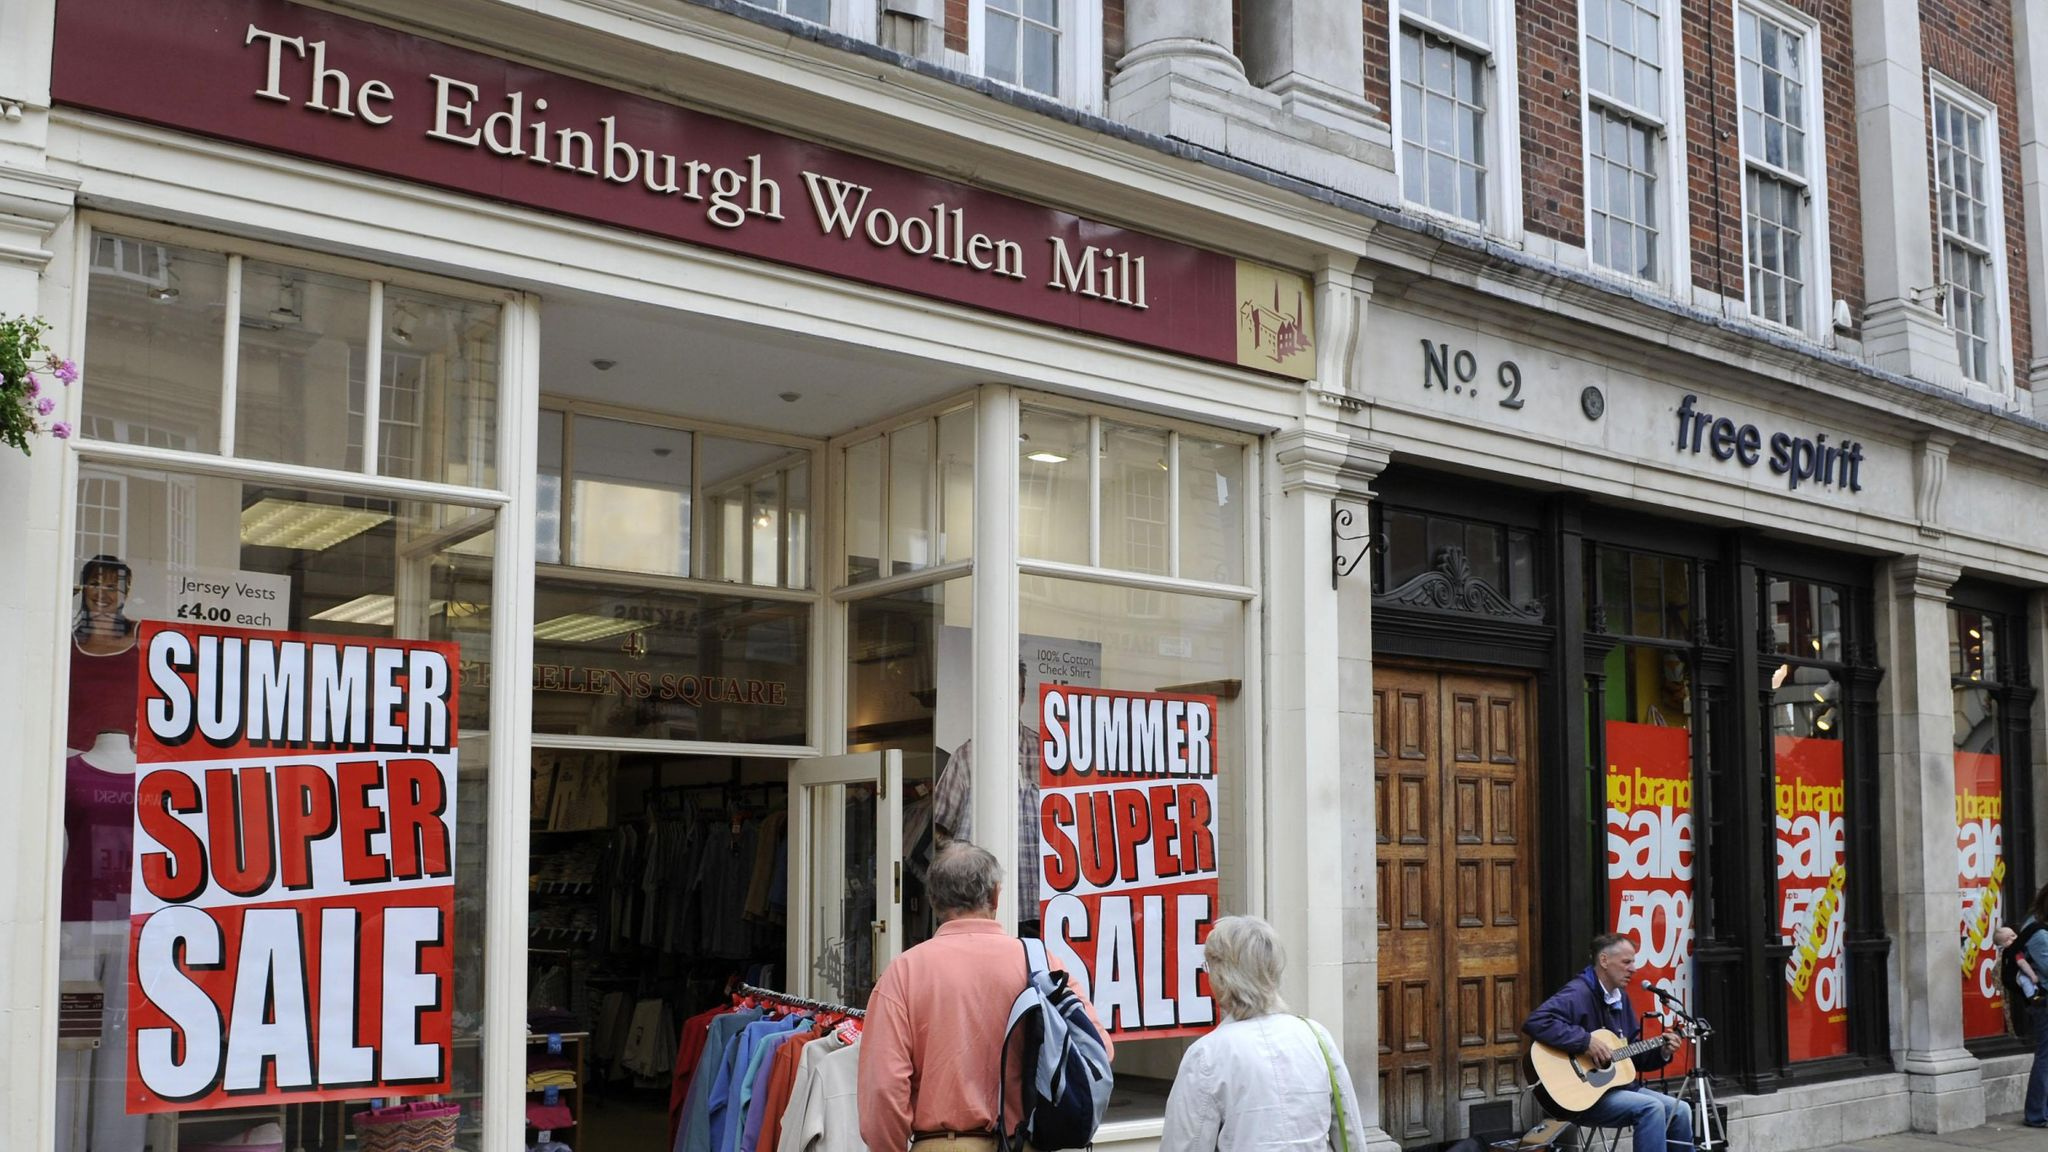 Edinburgh Woollen Mill on the brink of insolvency with 24,000 jobs at risk